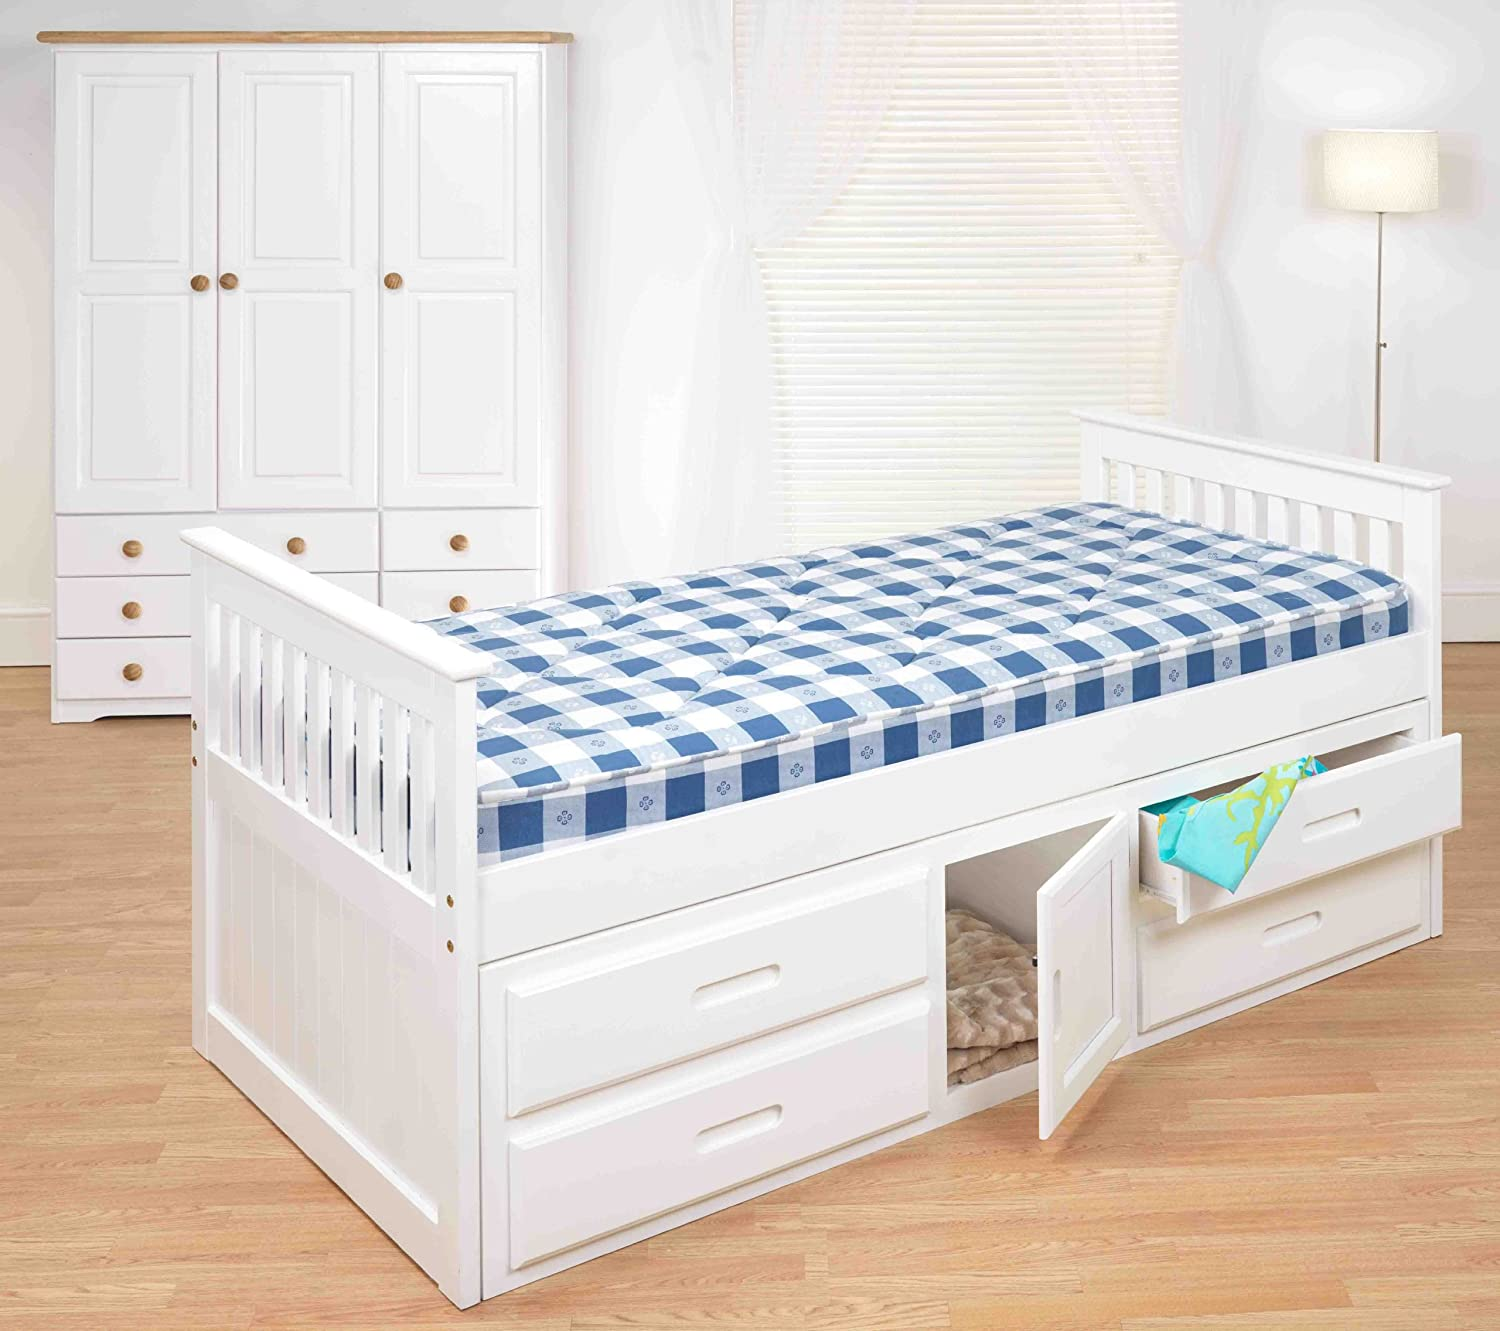 Single Bed With Storage Drawers Kids Beds 3ft Pine Captains Bed With Underbed And 2 X